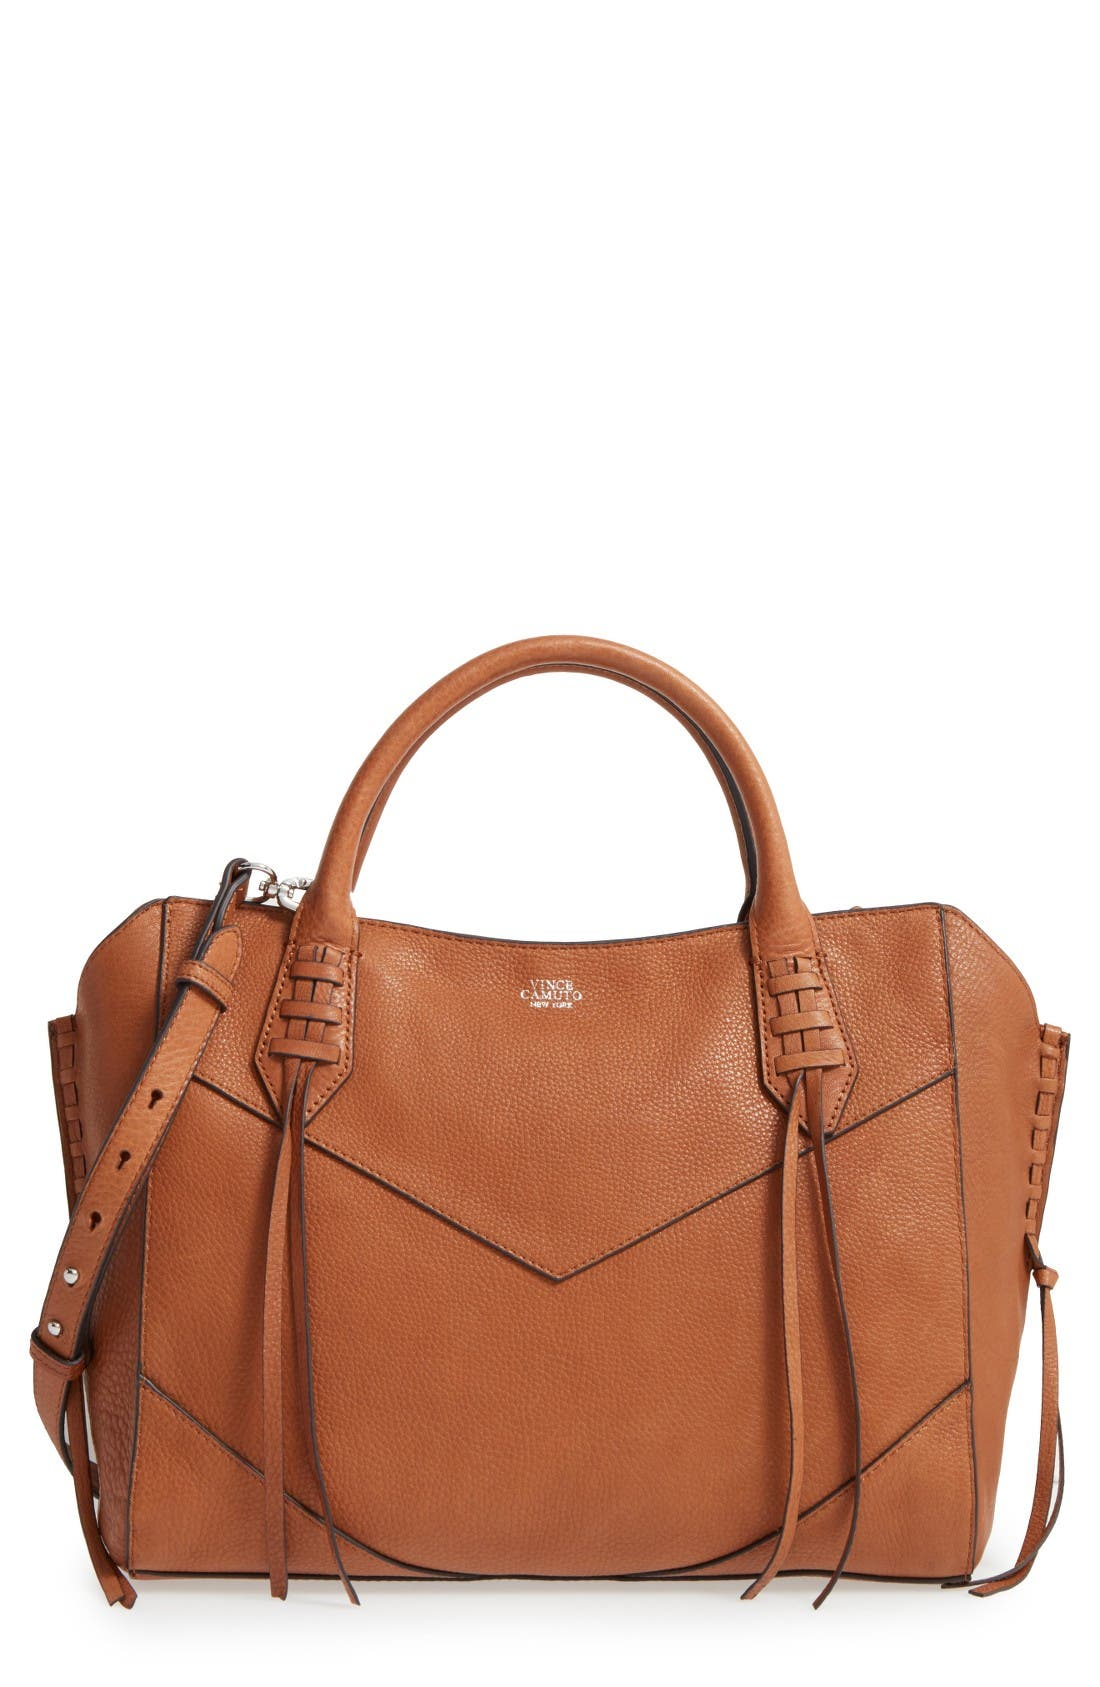 Main Image - Vince Camuto Fargo Leather Satchel